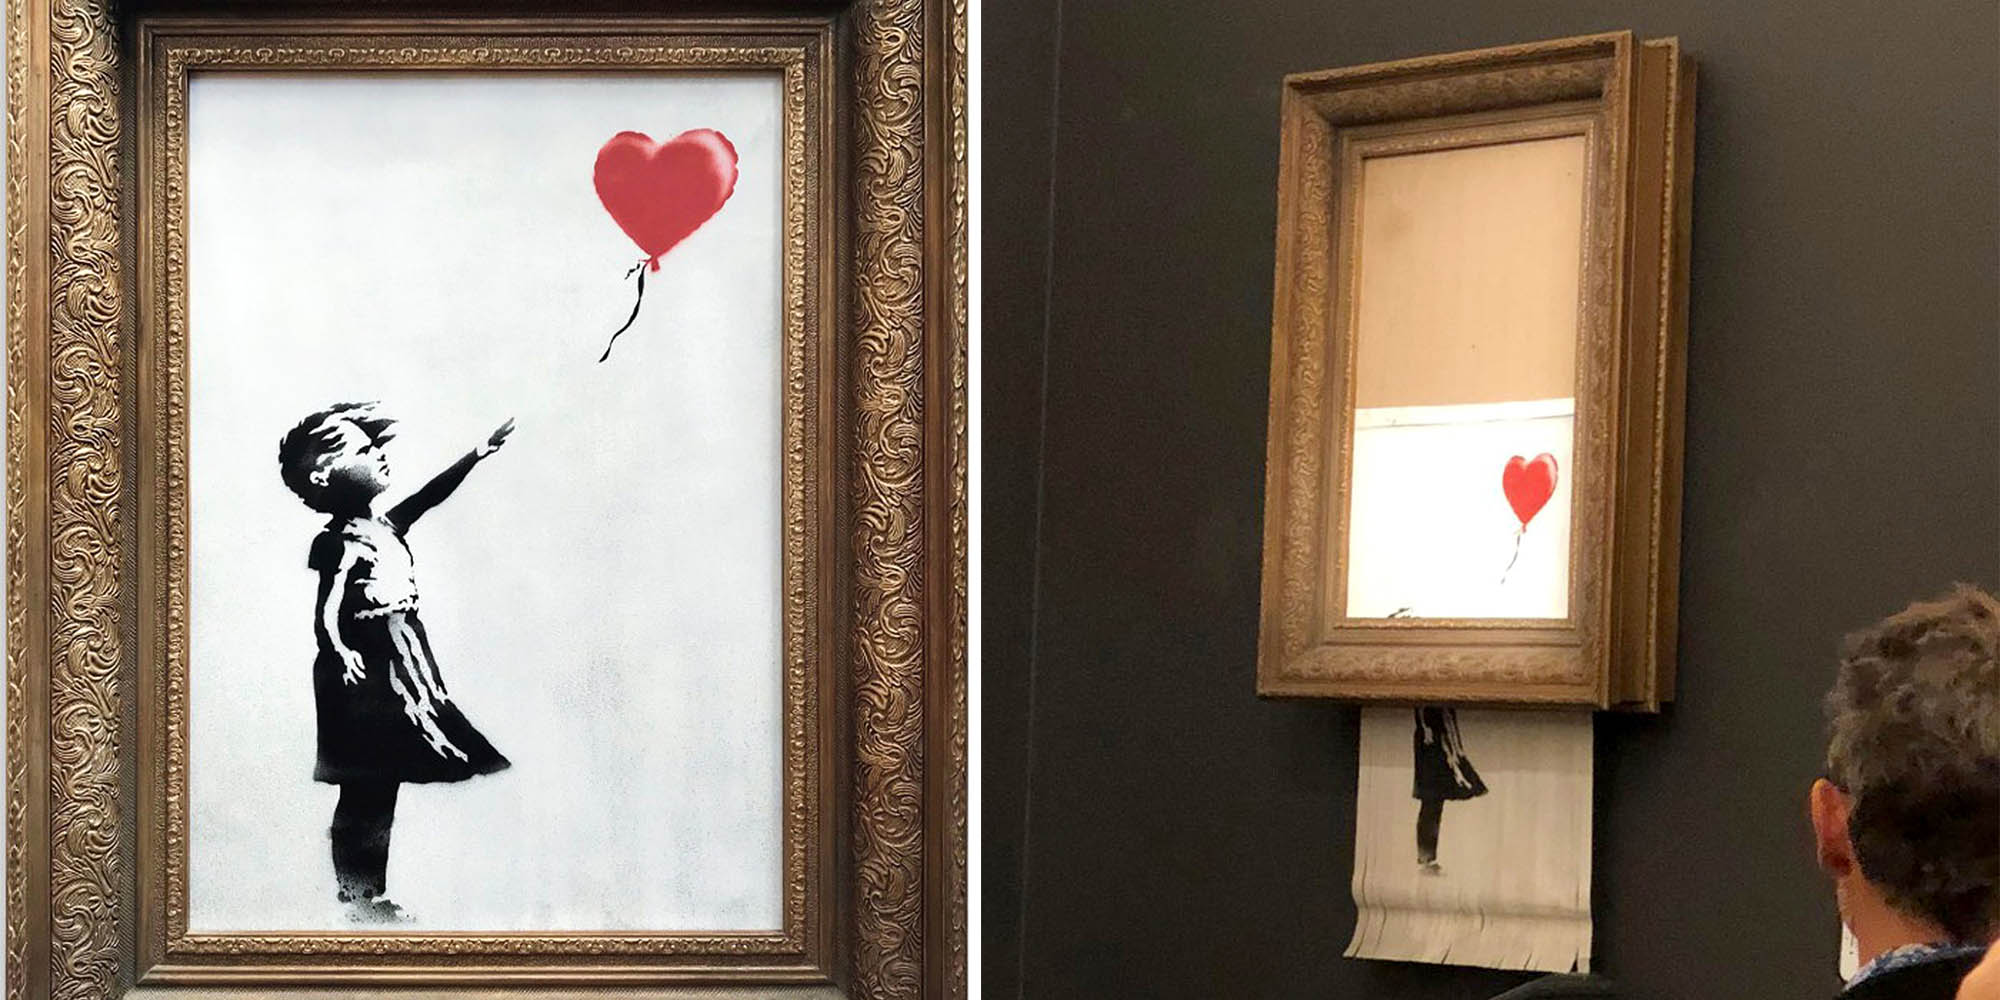 https://static.independent.co.uk/s3fs-public/thumbnails/image/2018/10/06/09/banksy.jpg